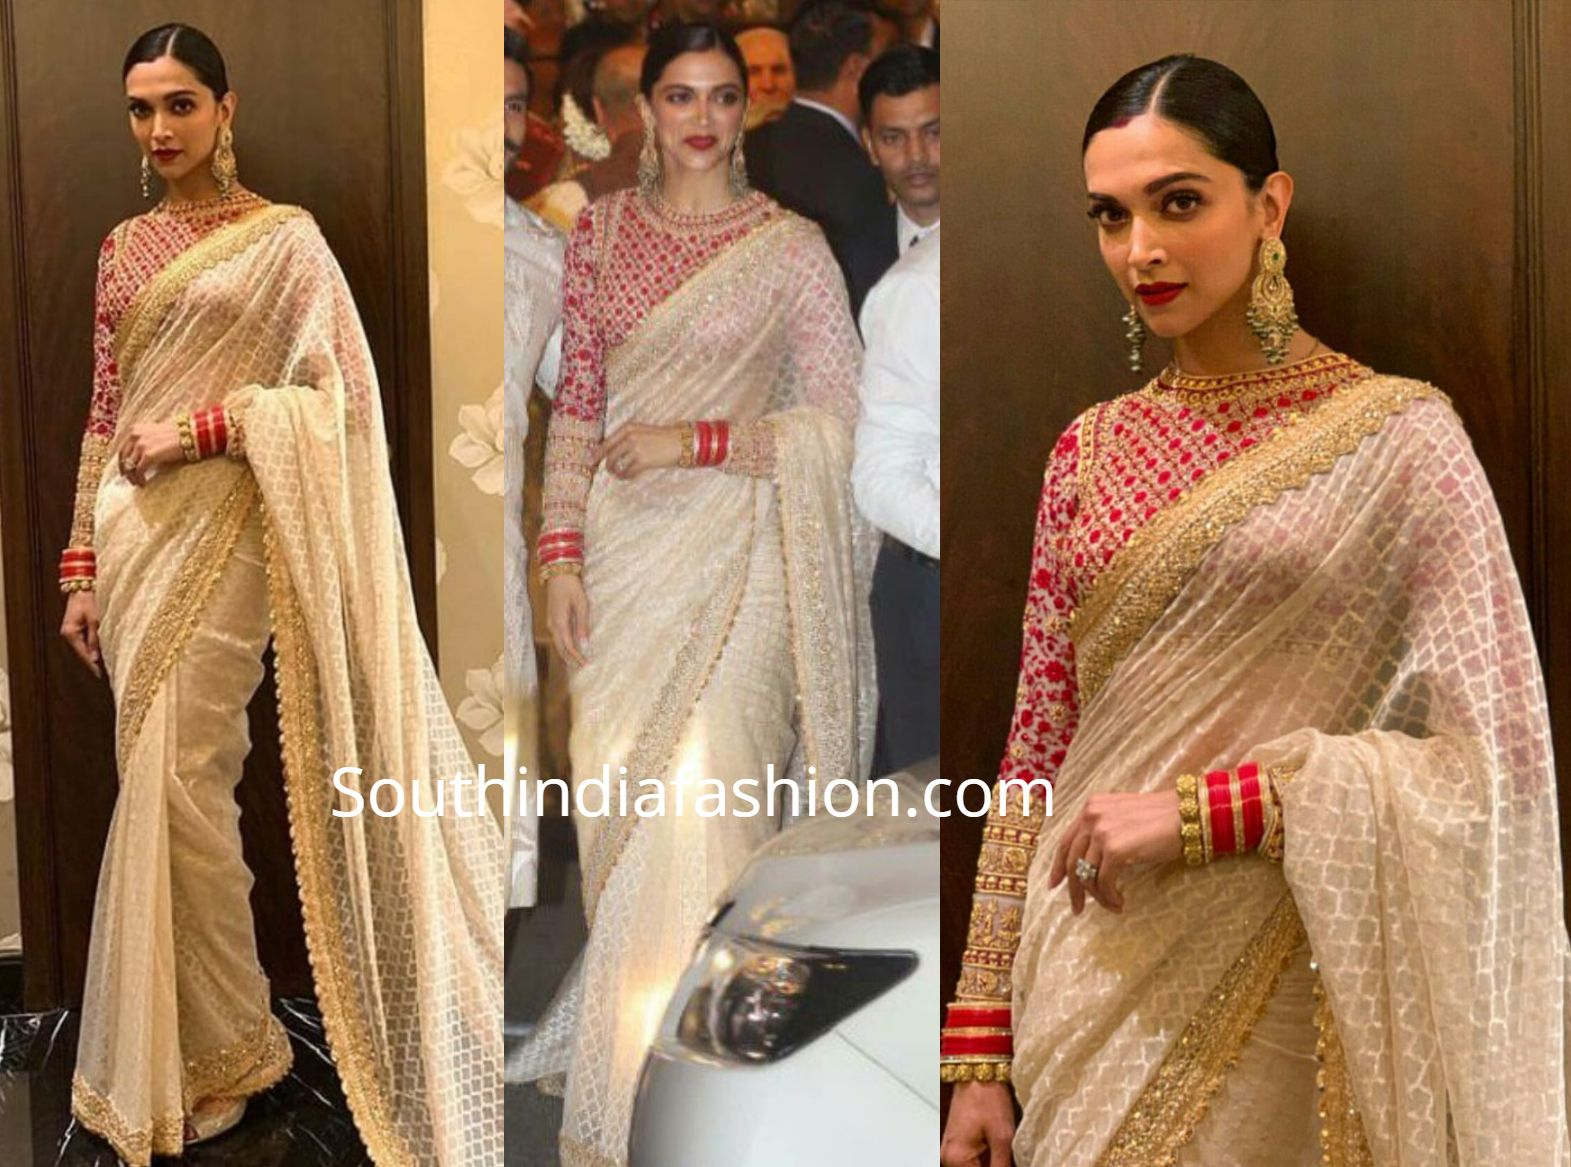 Deepika Padukone And Ranveer Singh At Isha Ambani S Wedding Off White Saree Saree Look Indian Saree Blouses Designs